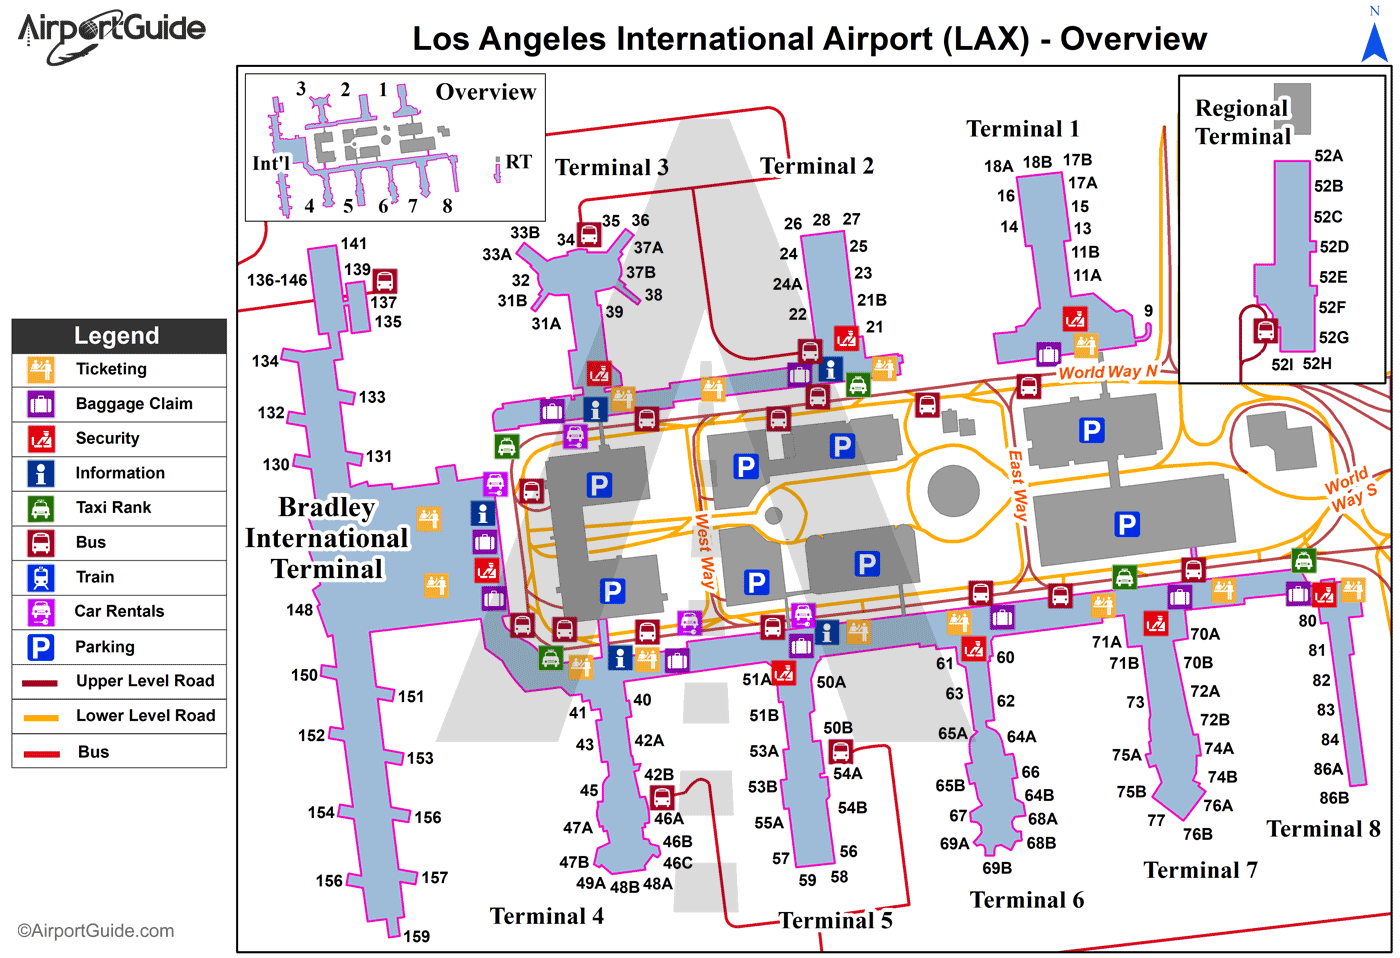 Los Angeles - Los Angeles International (LAX) Airport Terminal Map - Overview